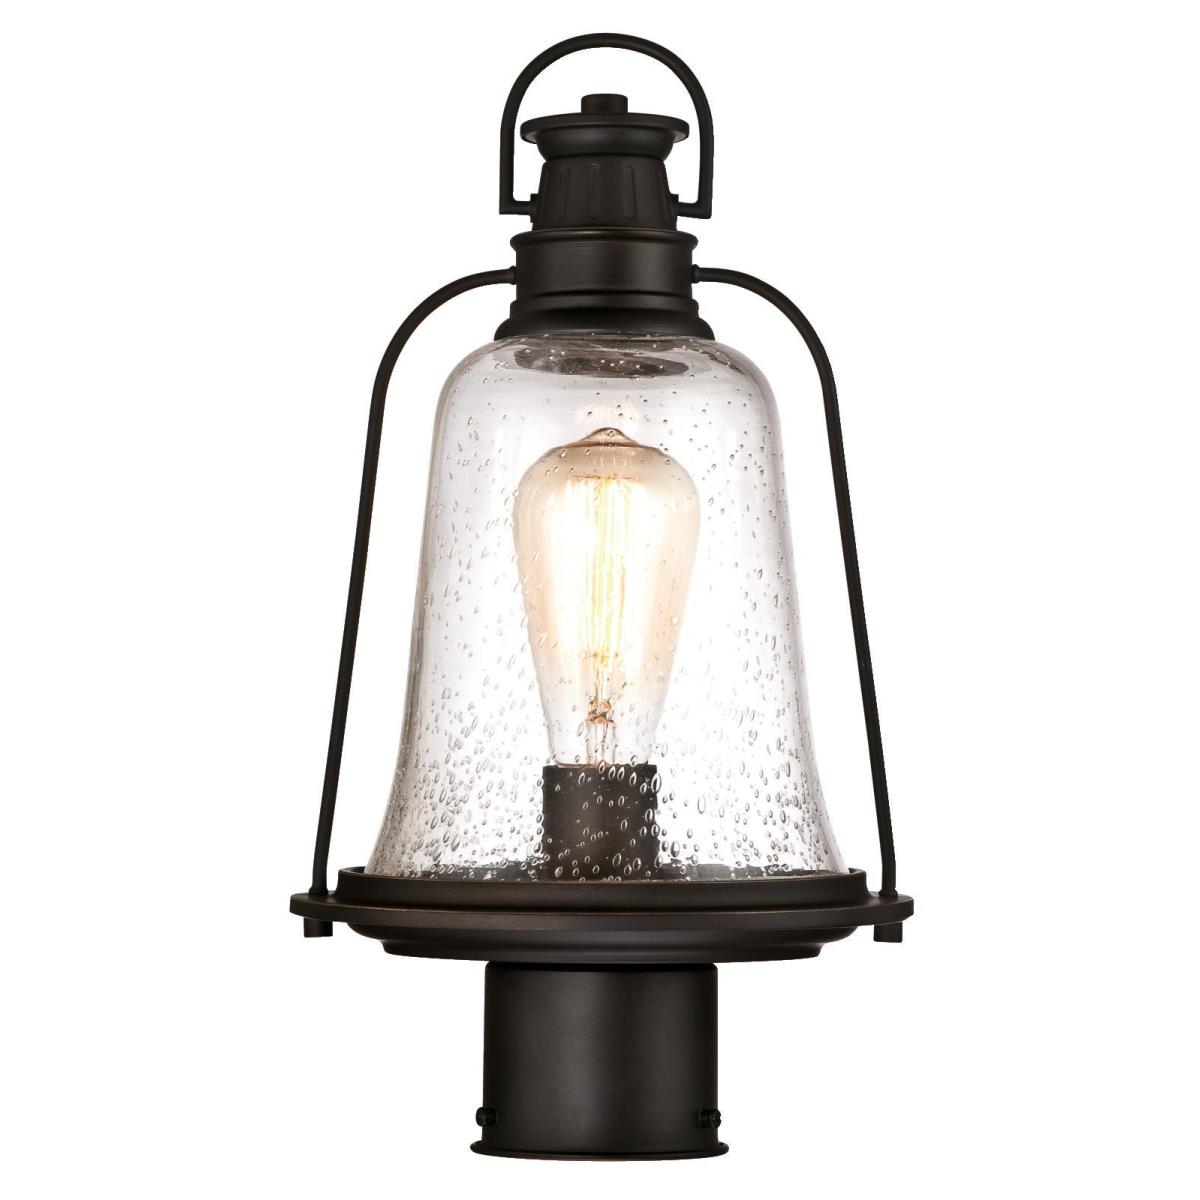 1 Light Post Top Fixture Oil Rubbed Bronze Finish with Highlights and Clear Seeded Glass